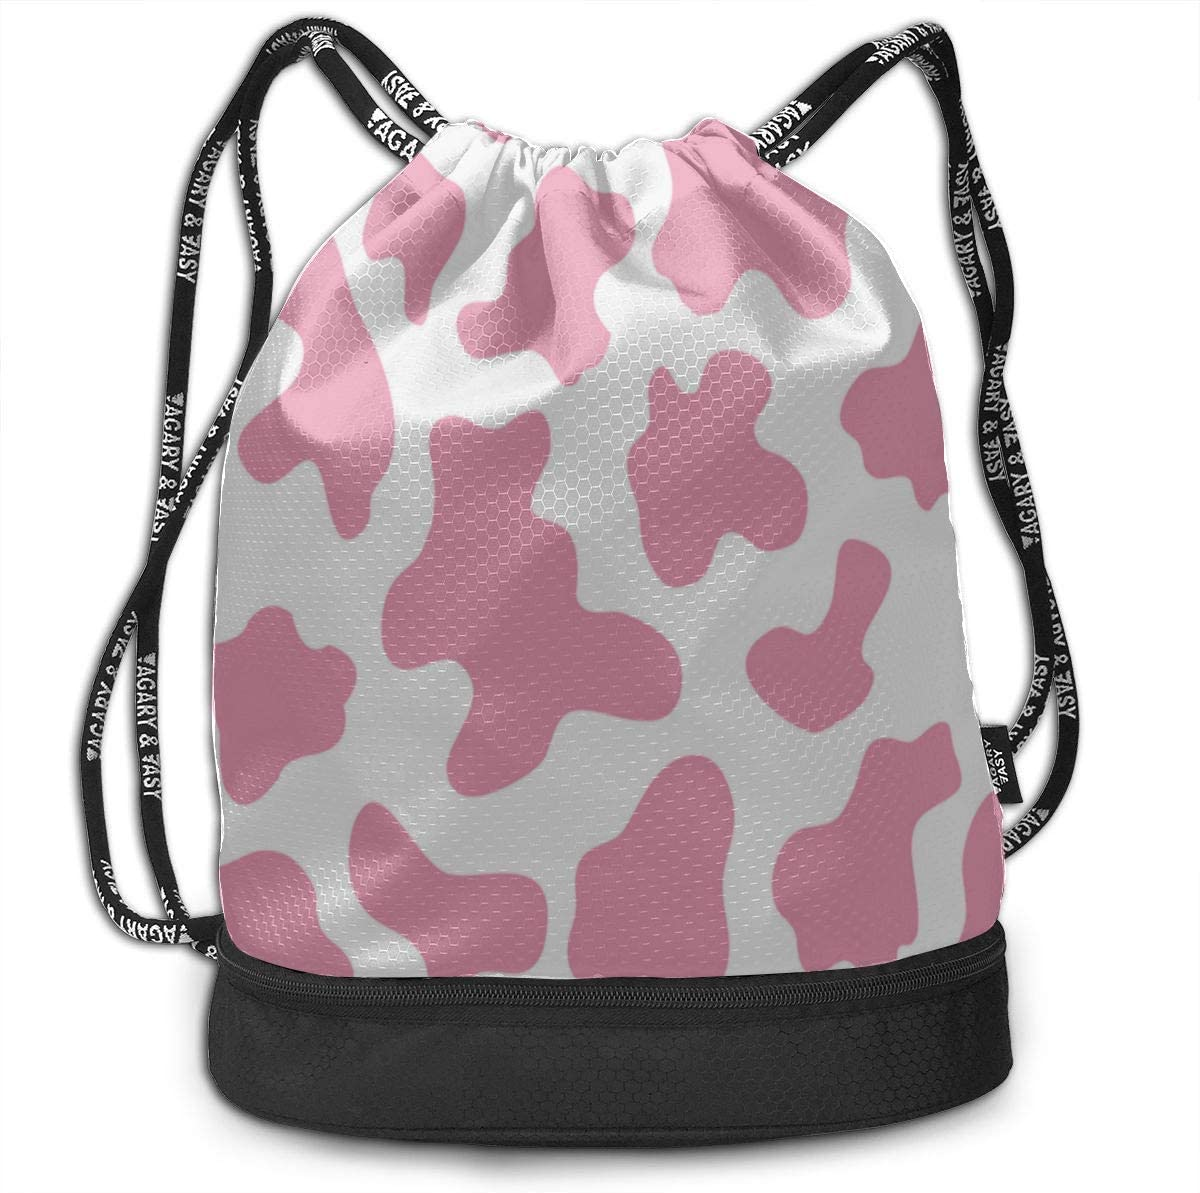 Funny Bag For Women Printed Cow Spots Abstract Art Gym Drawstring Bags Backpack Sports String Bundle Backpack For Sport With Shoe Pocket Gym Small Bag For Women